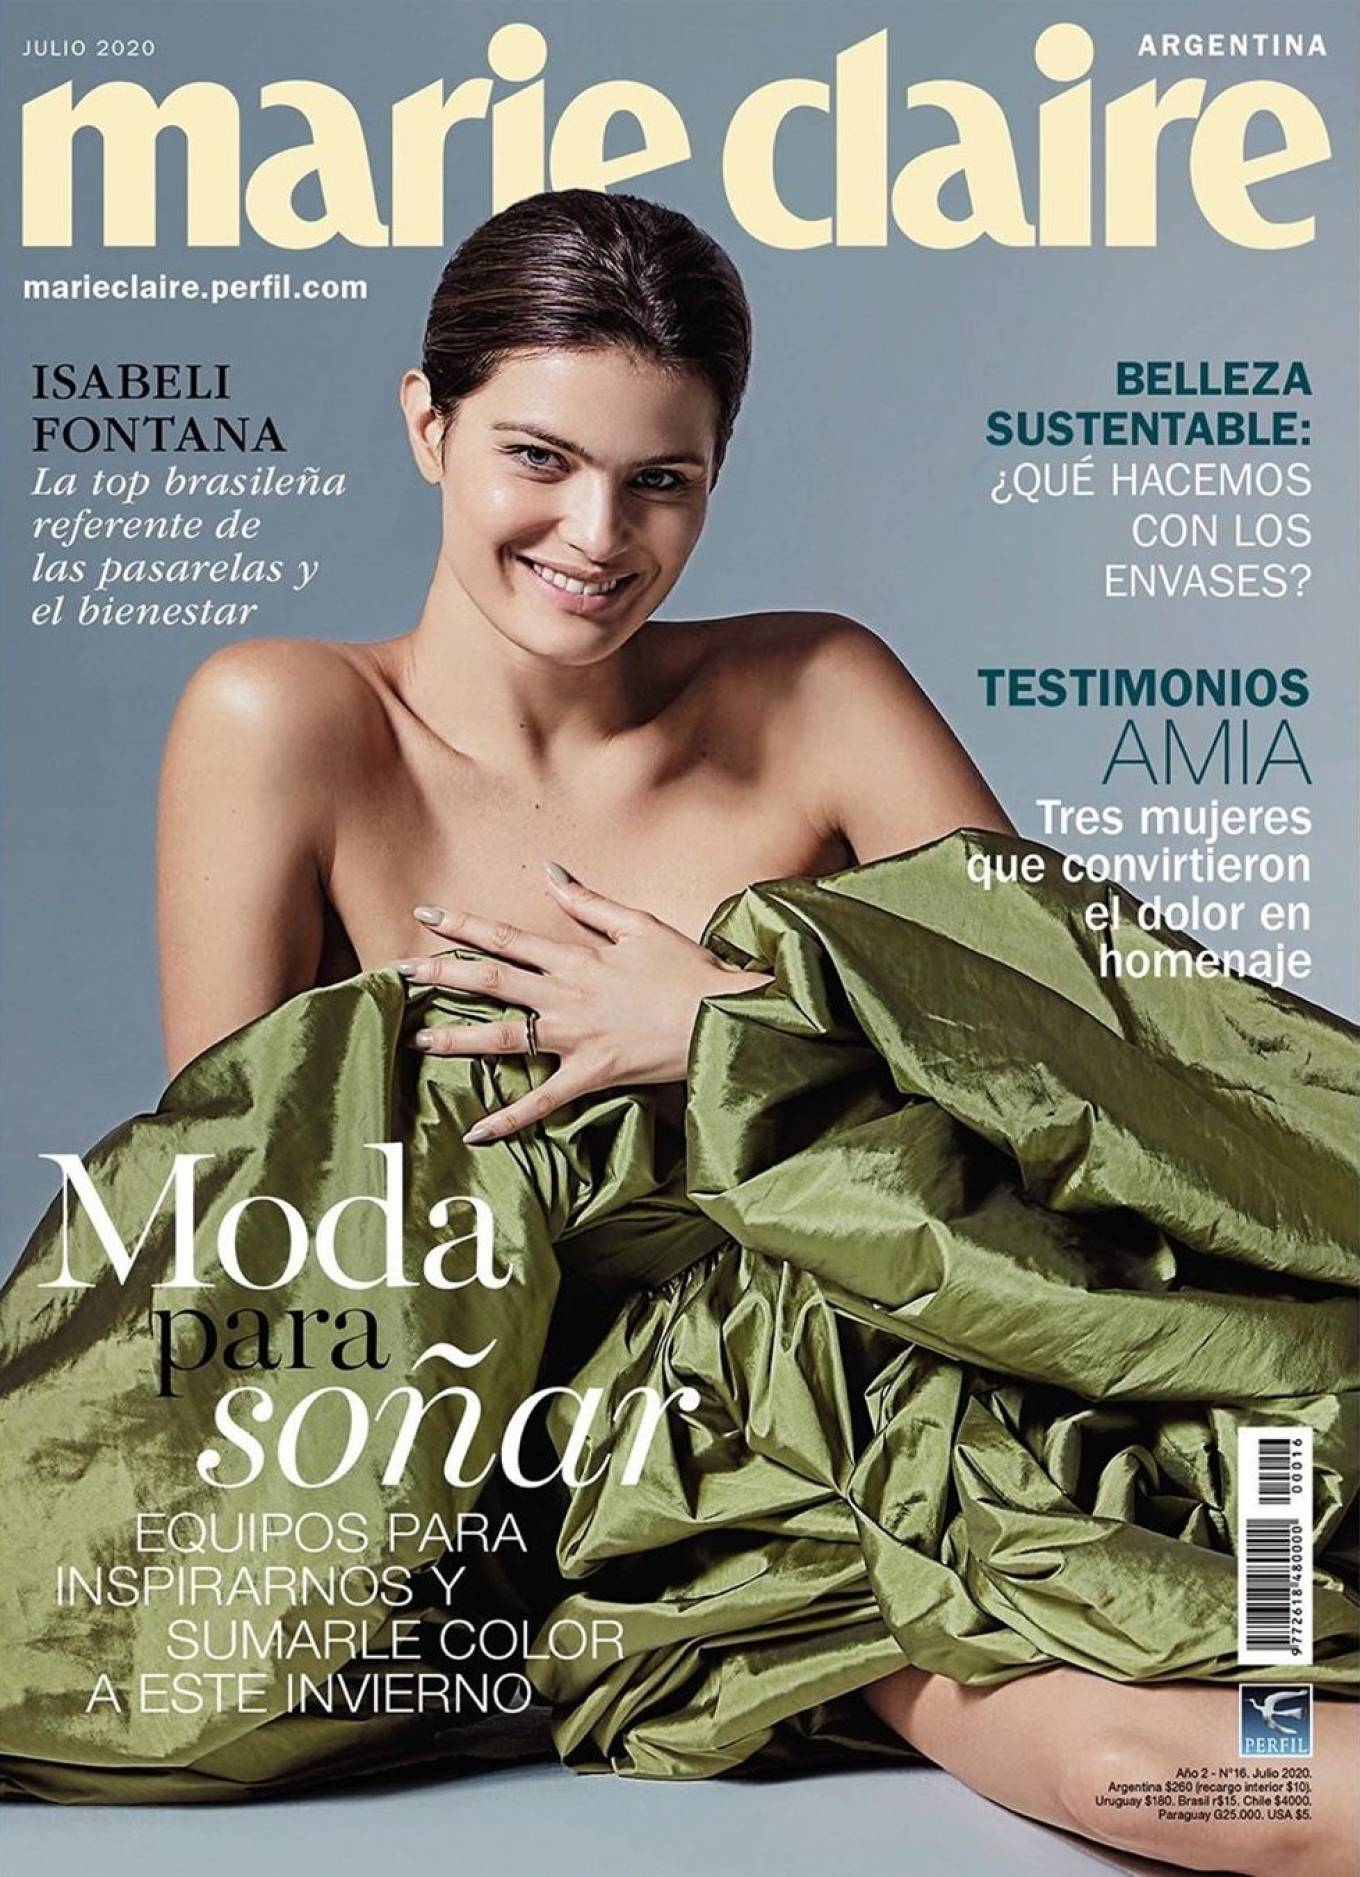 Isabeli Fontana for Marie Claire Argentina Cover (July 2020)